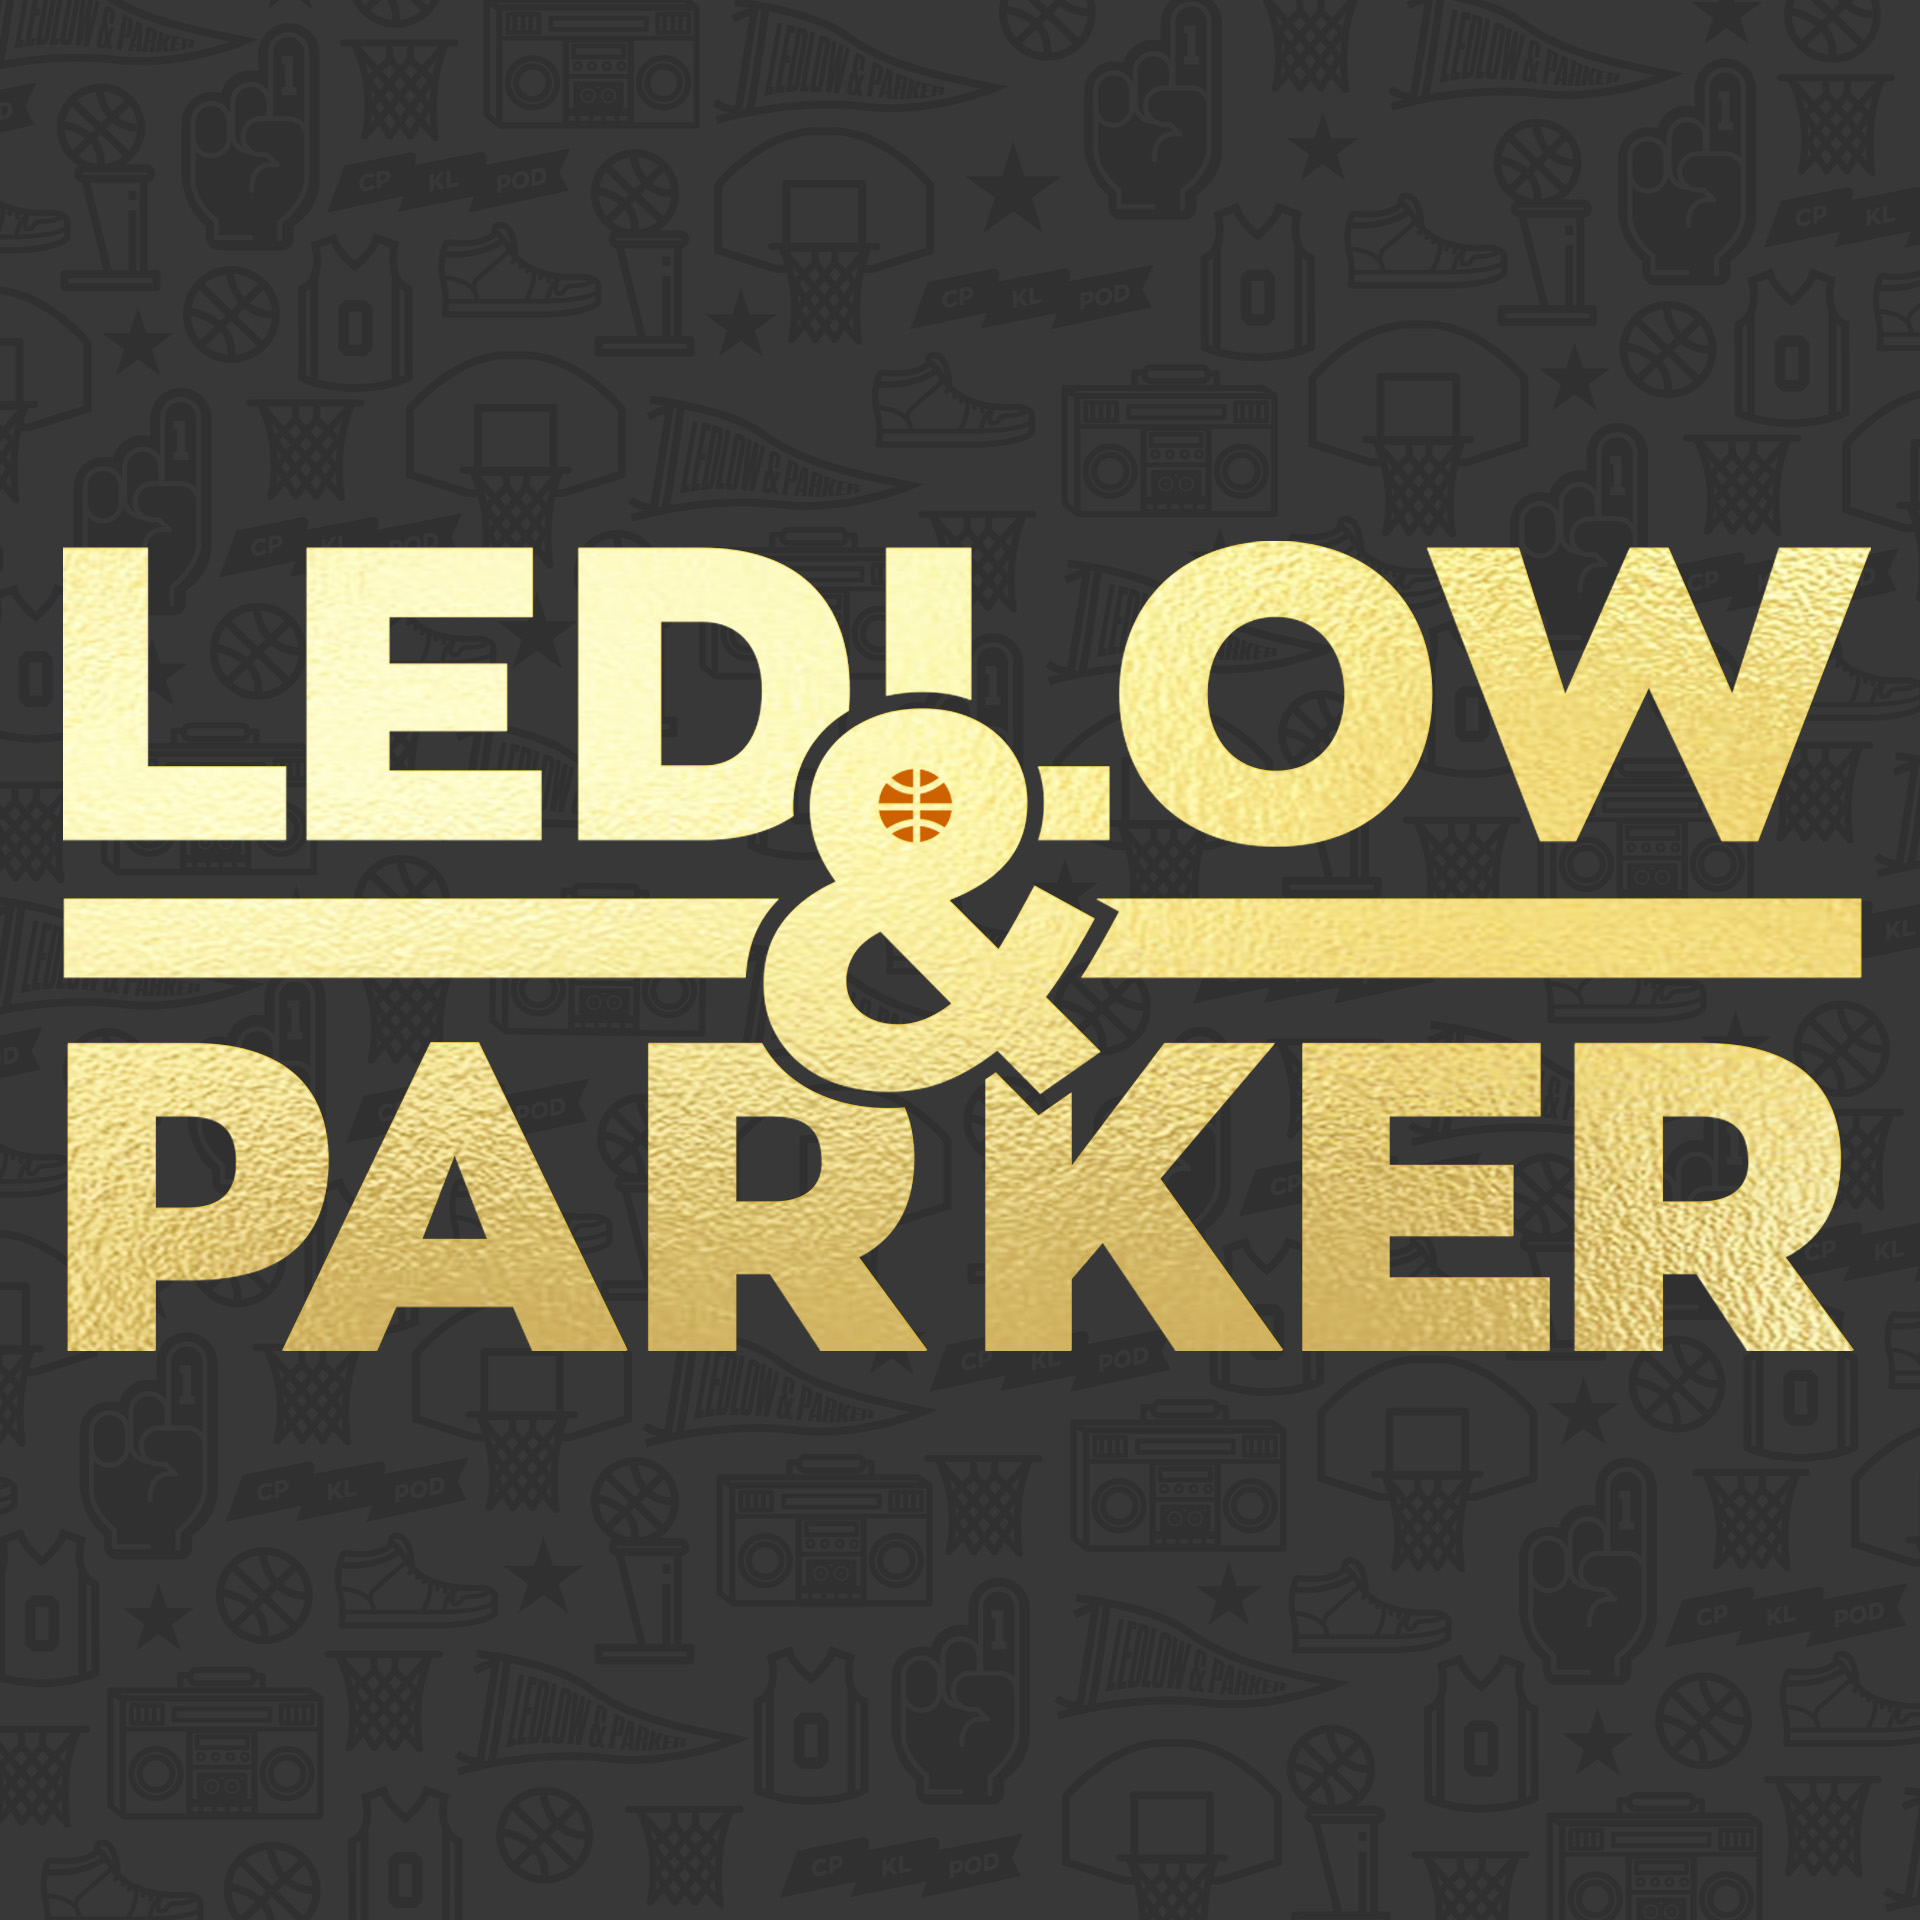 Ledlow and Parker